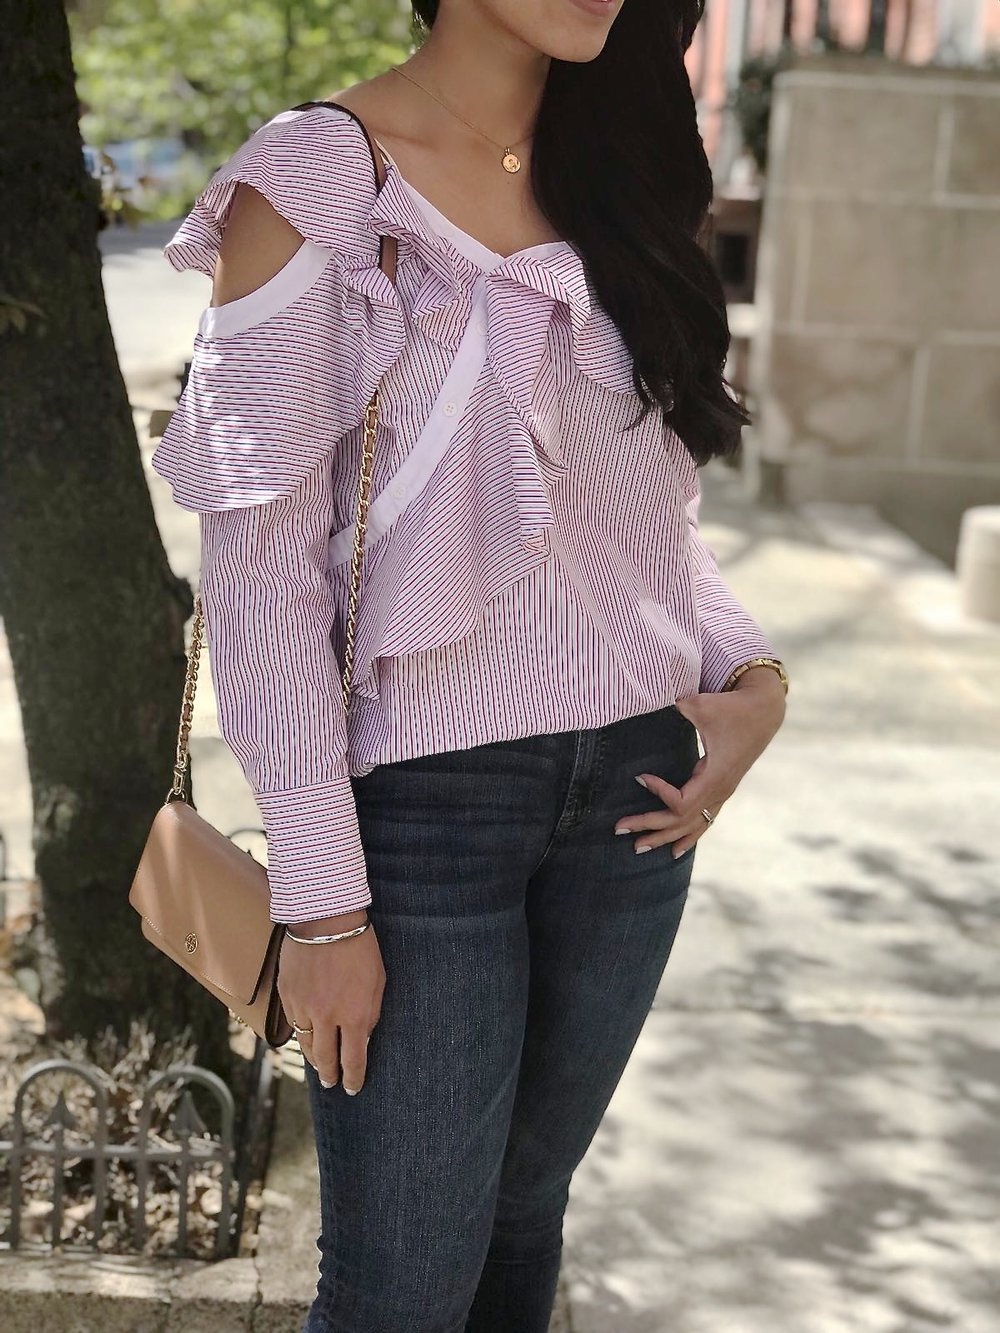 asymmterical-blouse-spring-fashion-outfit-ideas.jpg